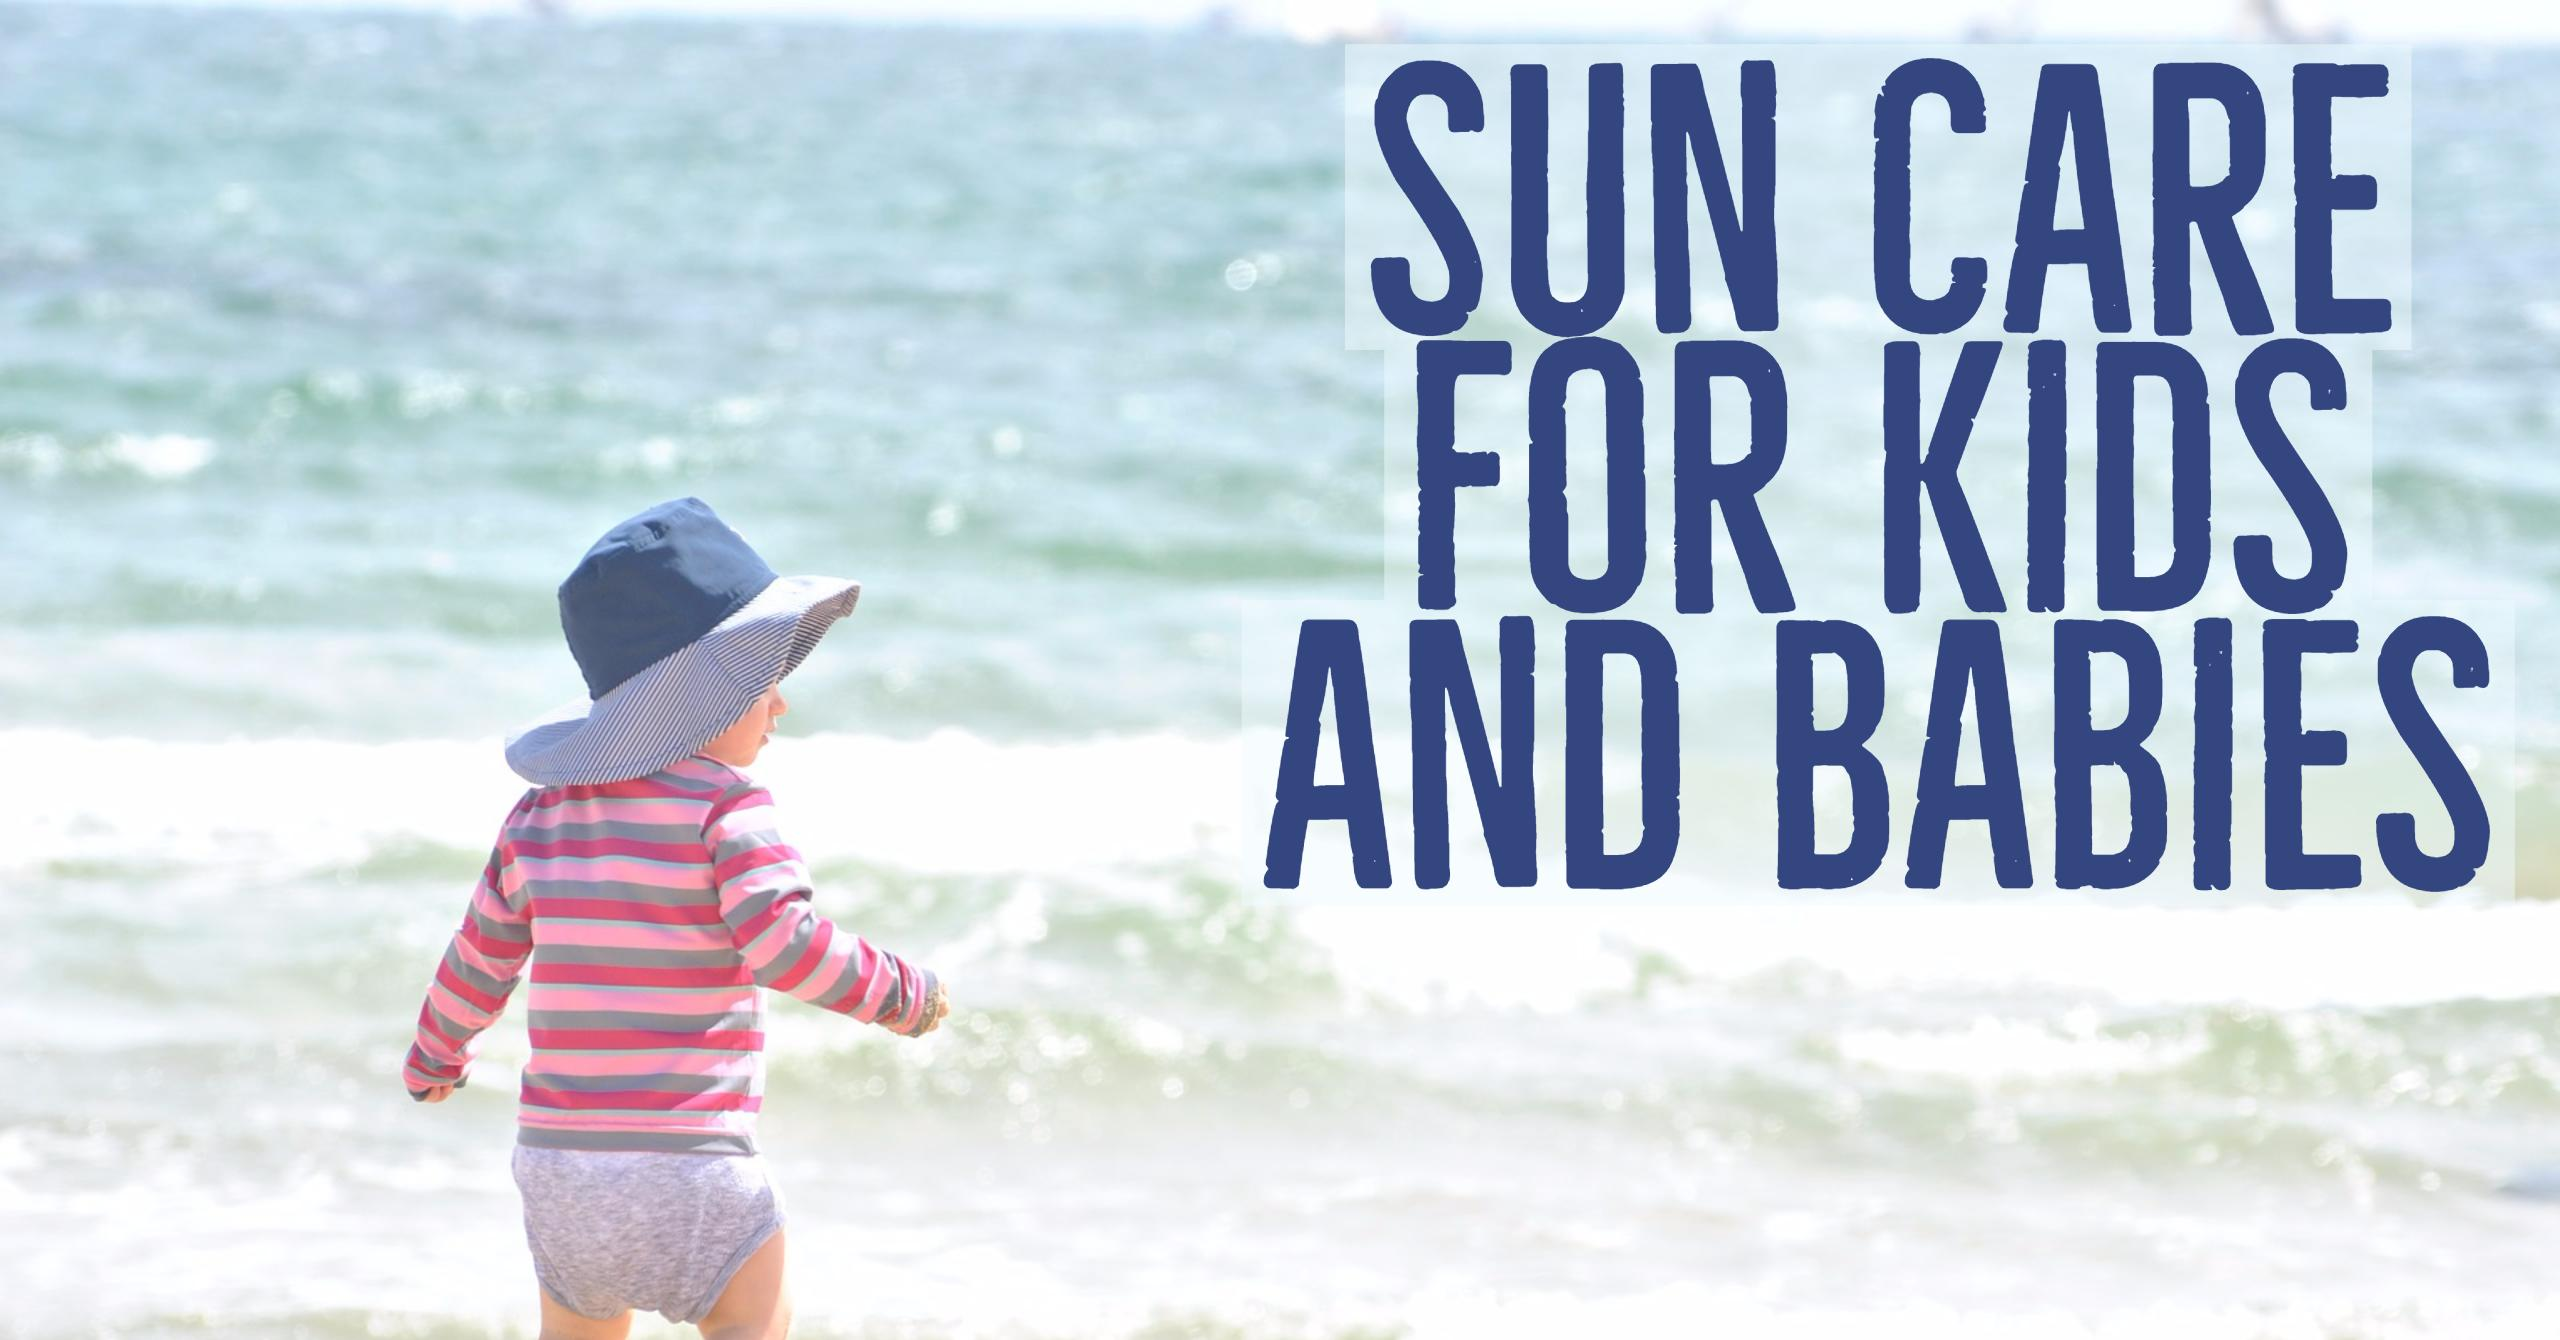 Sun Care for Kids and Babies